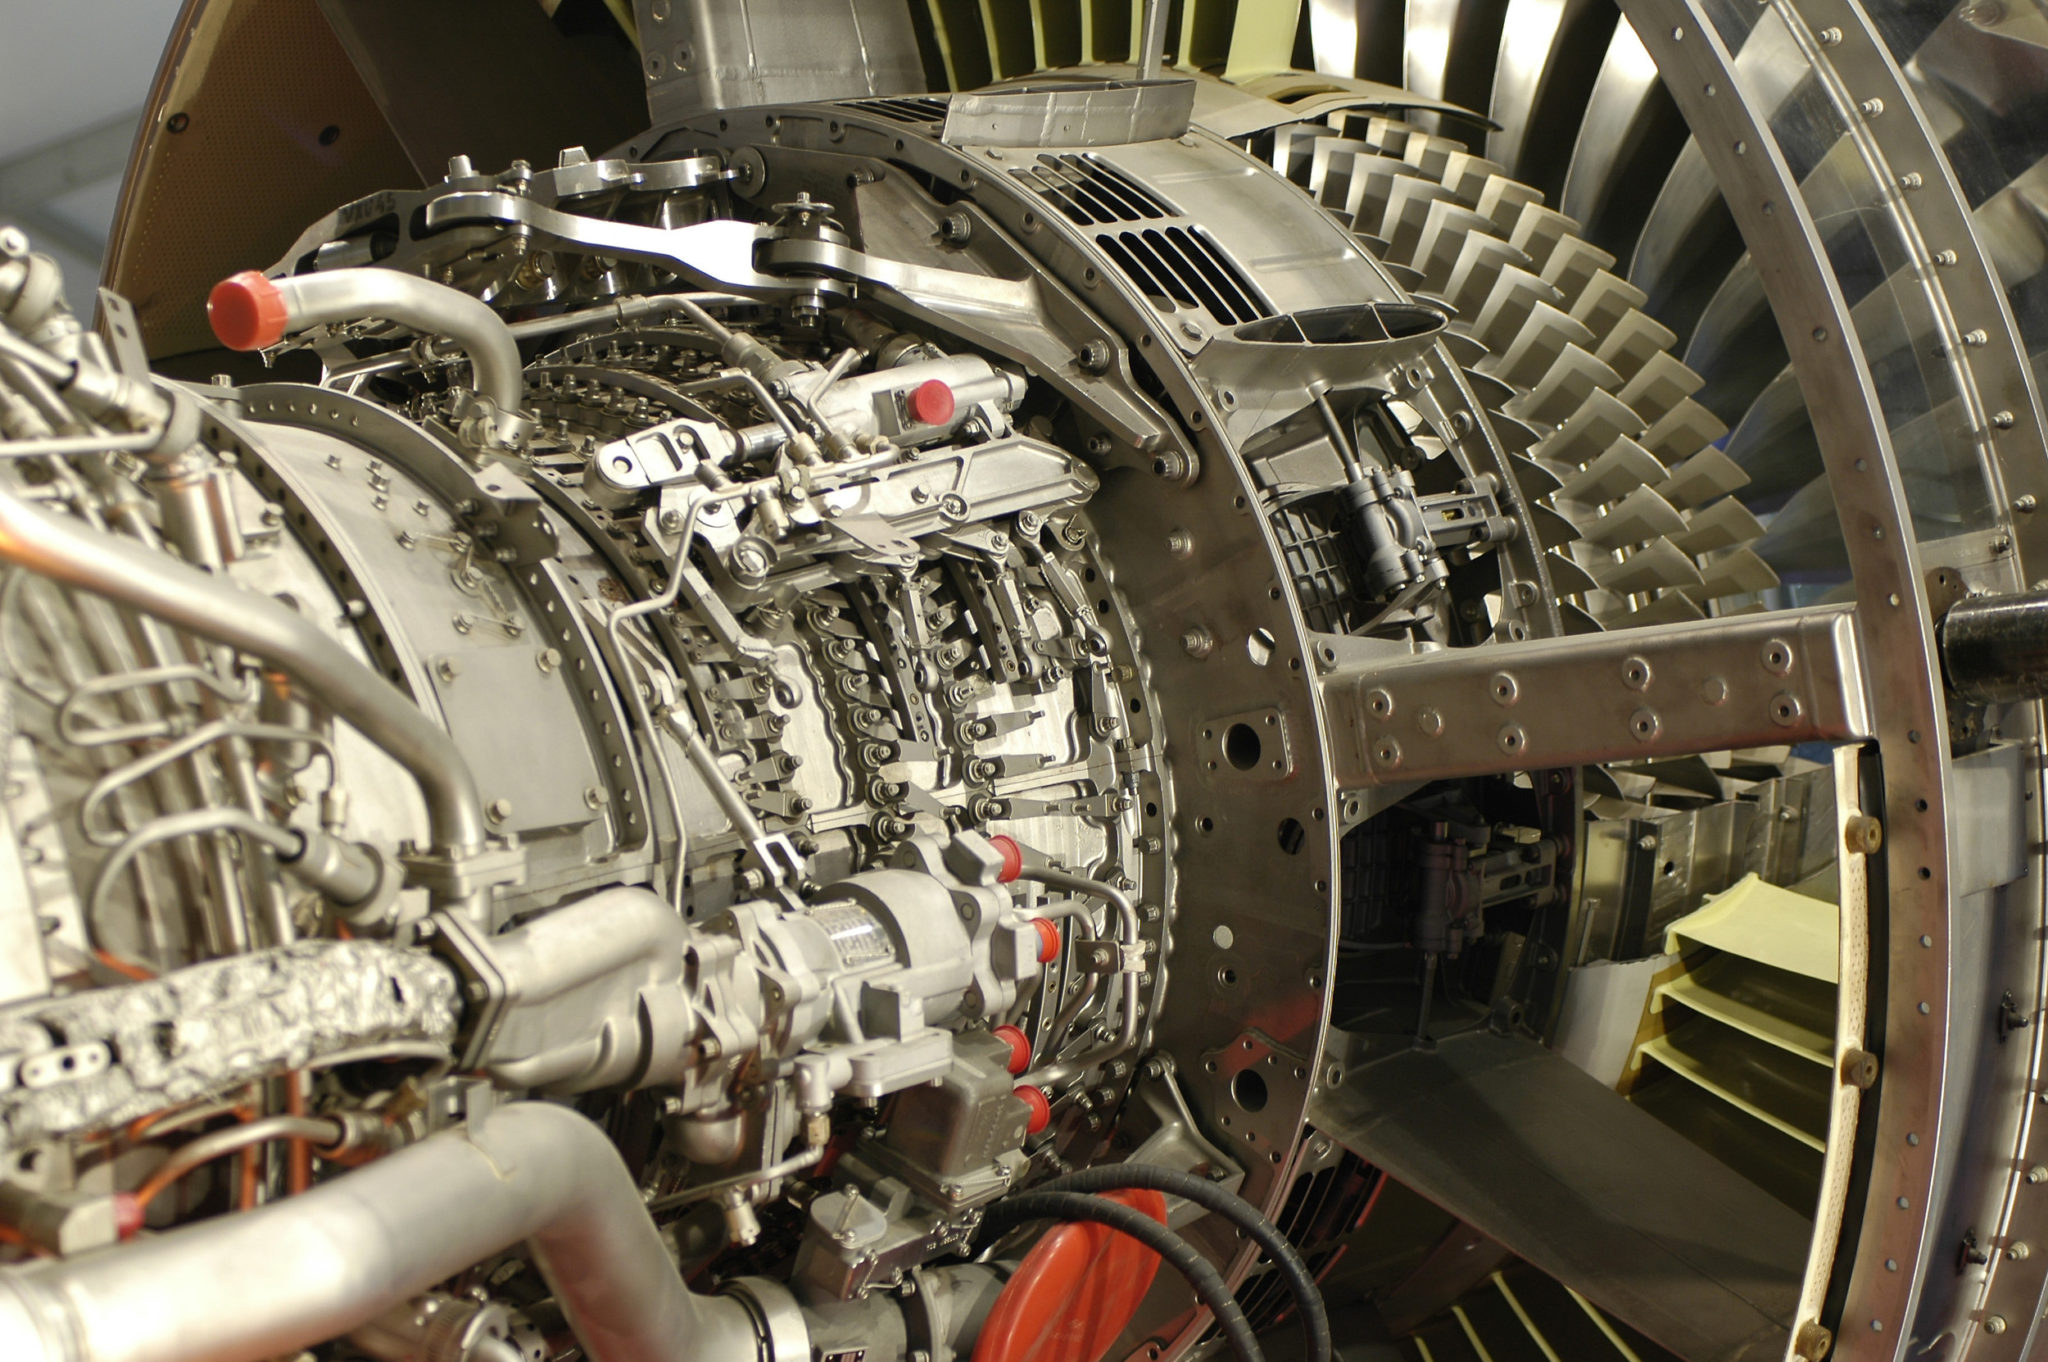 At a Ukrainian aircraft engine factory, China's military finds a cash-hungry partner